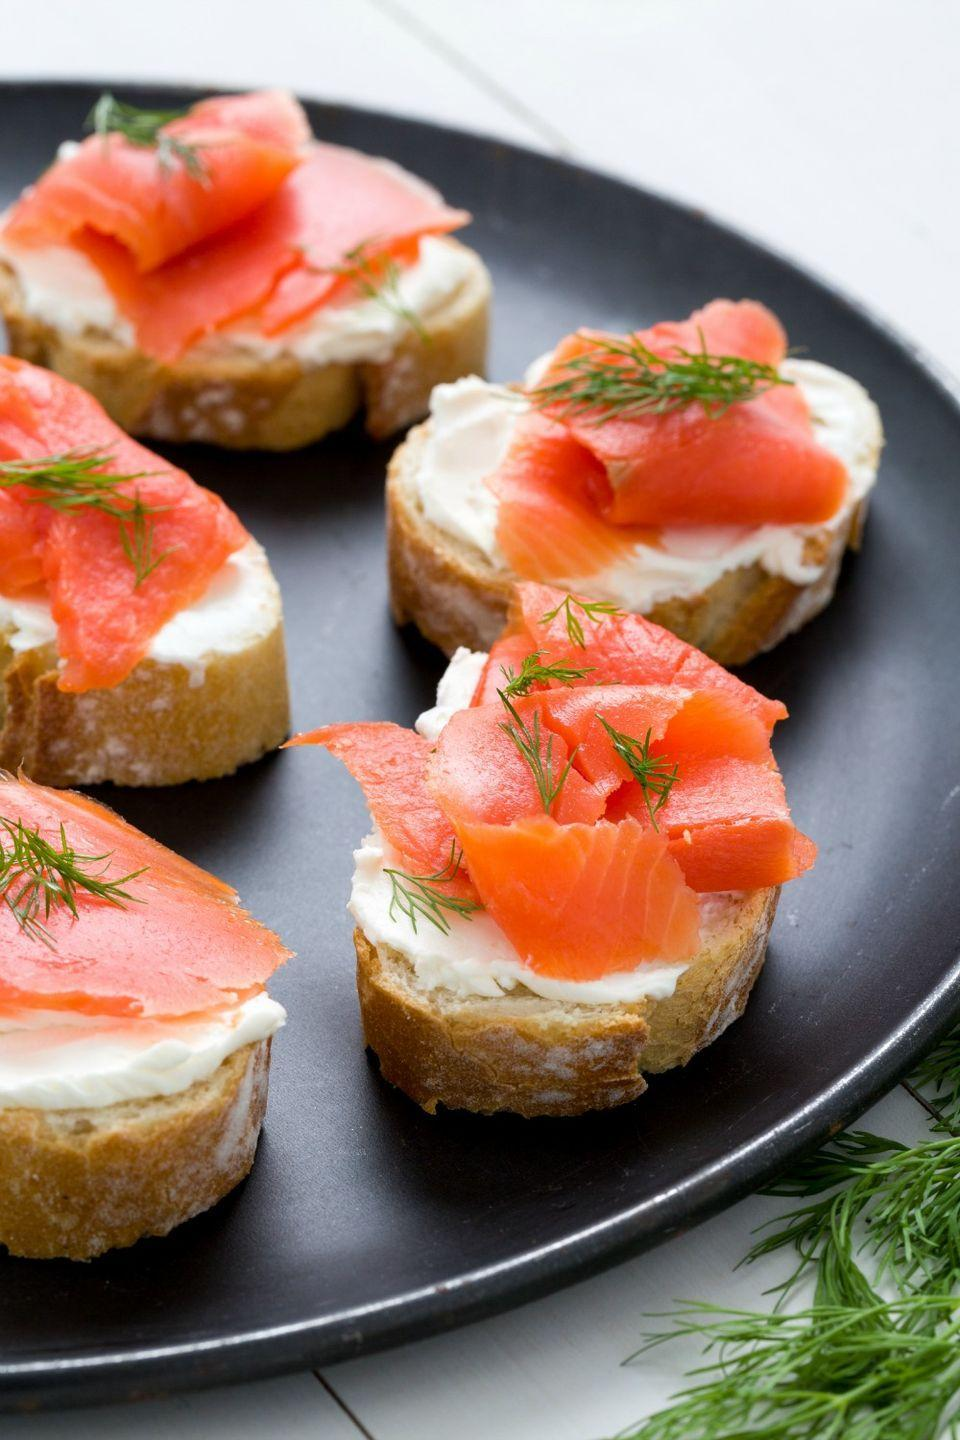 <p>Top toasted or fresh baguette slices with cream cheese, thinly sliced smoked salmon, and fresh dill for everything you love about a bagel with lox.</p>